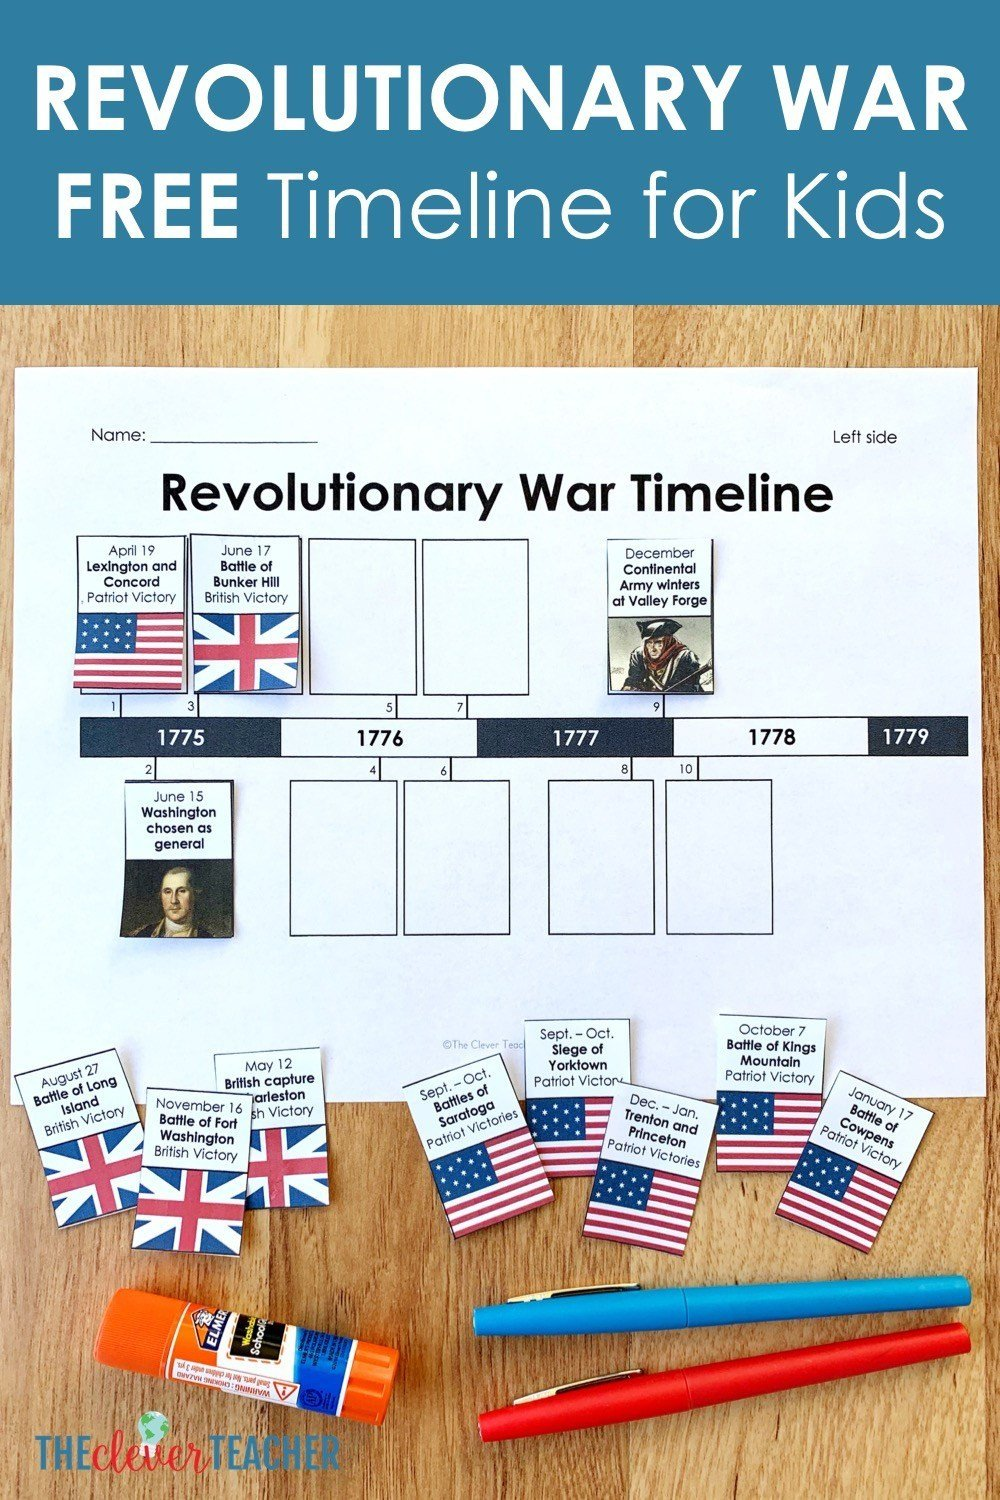 Timeline Worksheets for Middle School Revolutionary War Timeline for Kids Free From the Clever